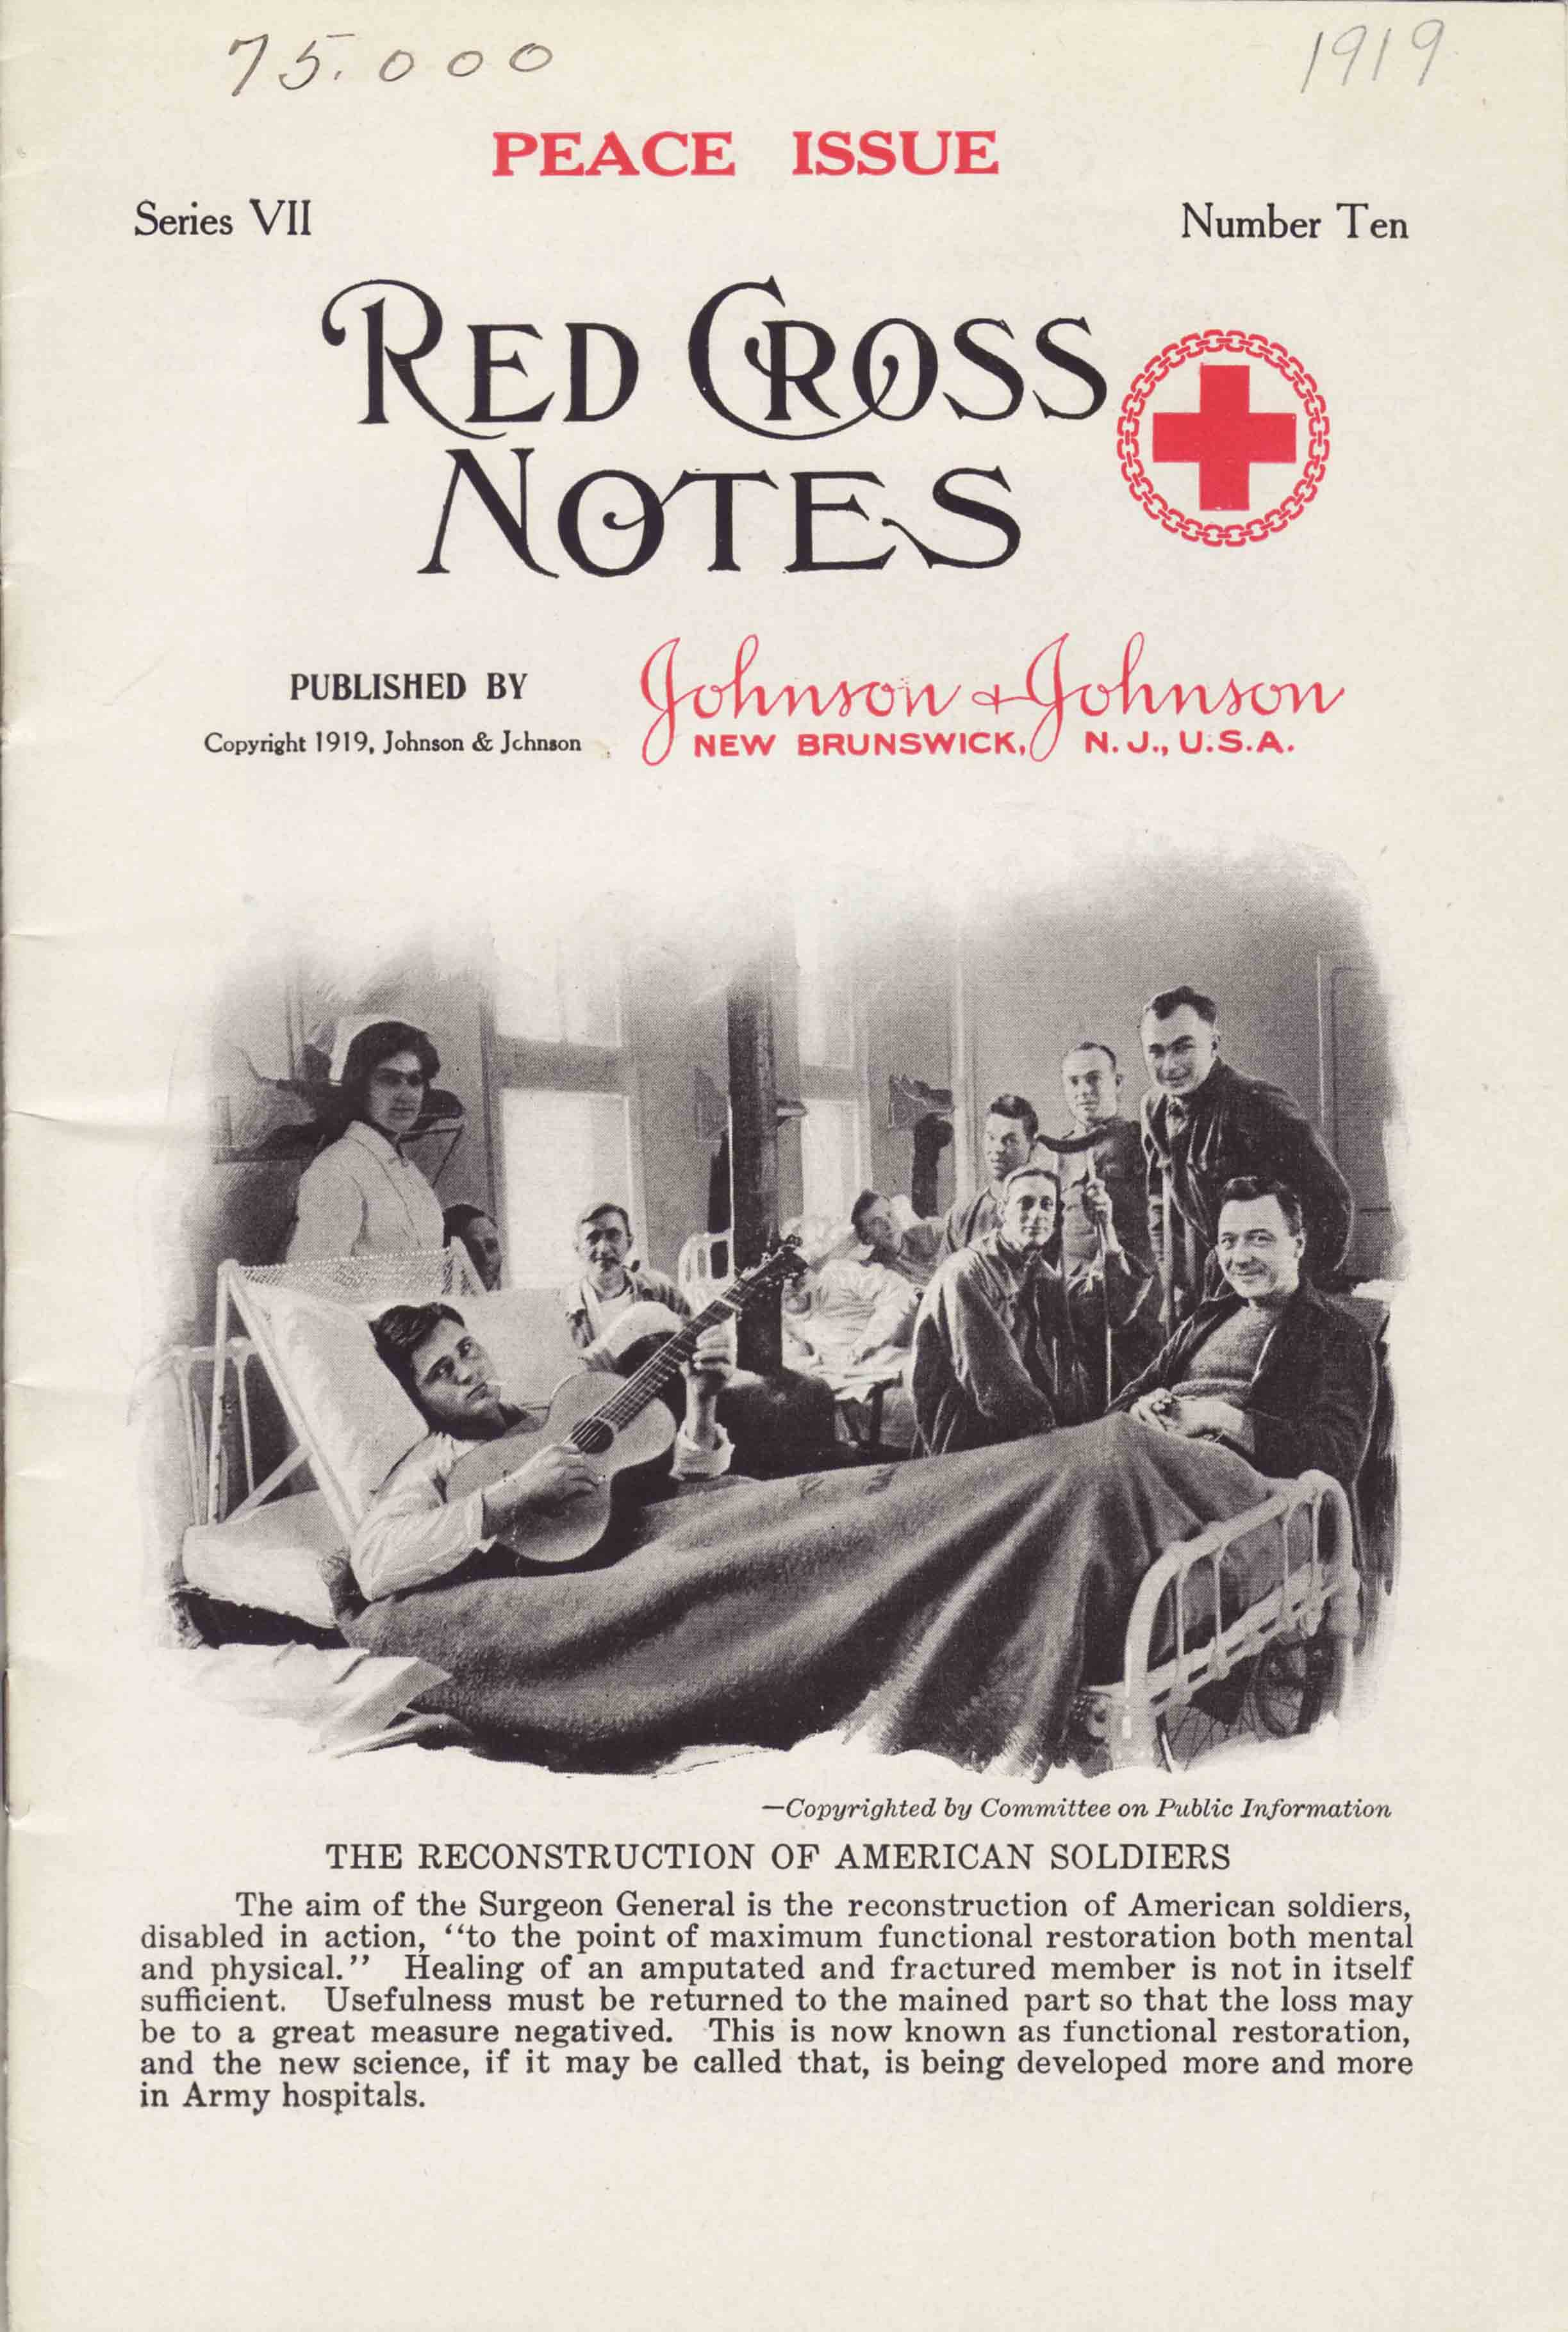 Red Cross Notes Peace Issue, 1919, focusing on the rehabilitation of returning veterans.  Image courtesy: Johnson & Johnson Archives.